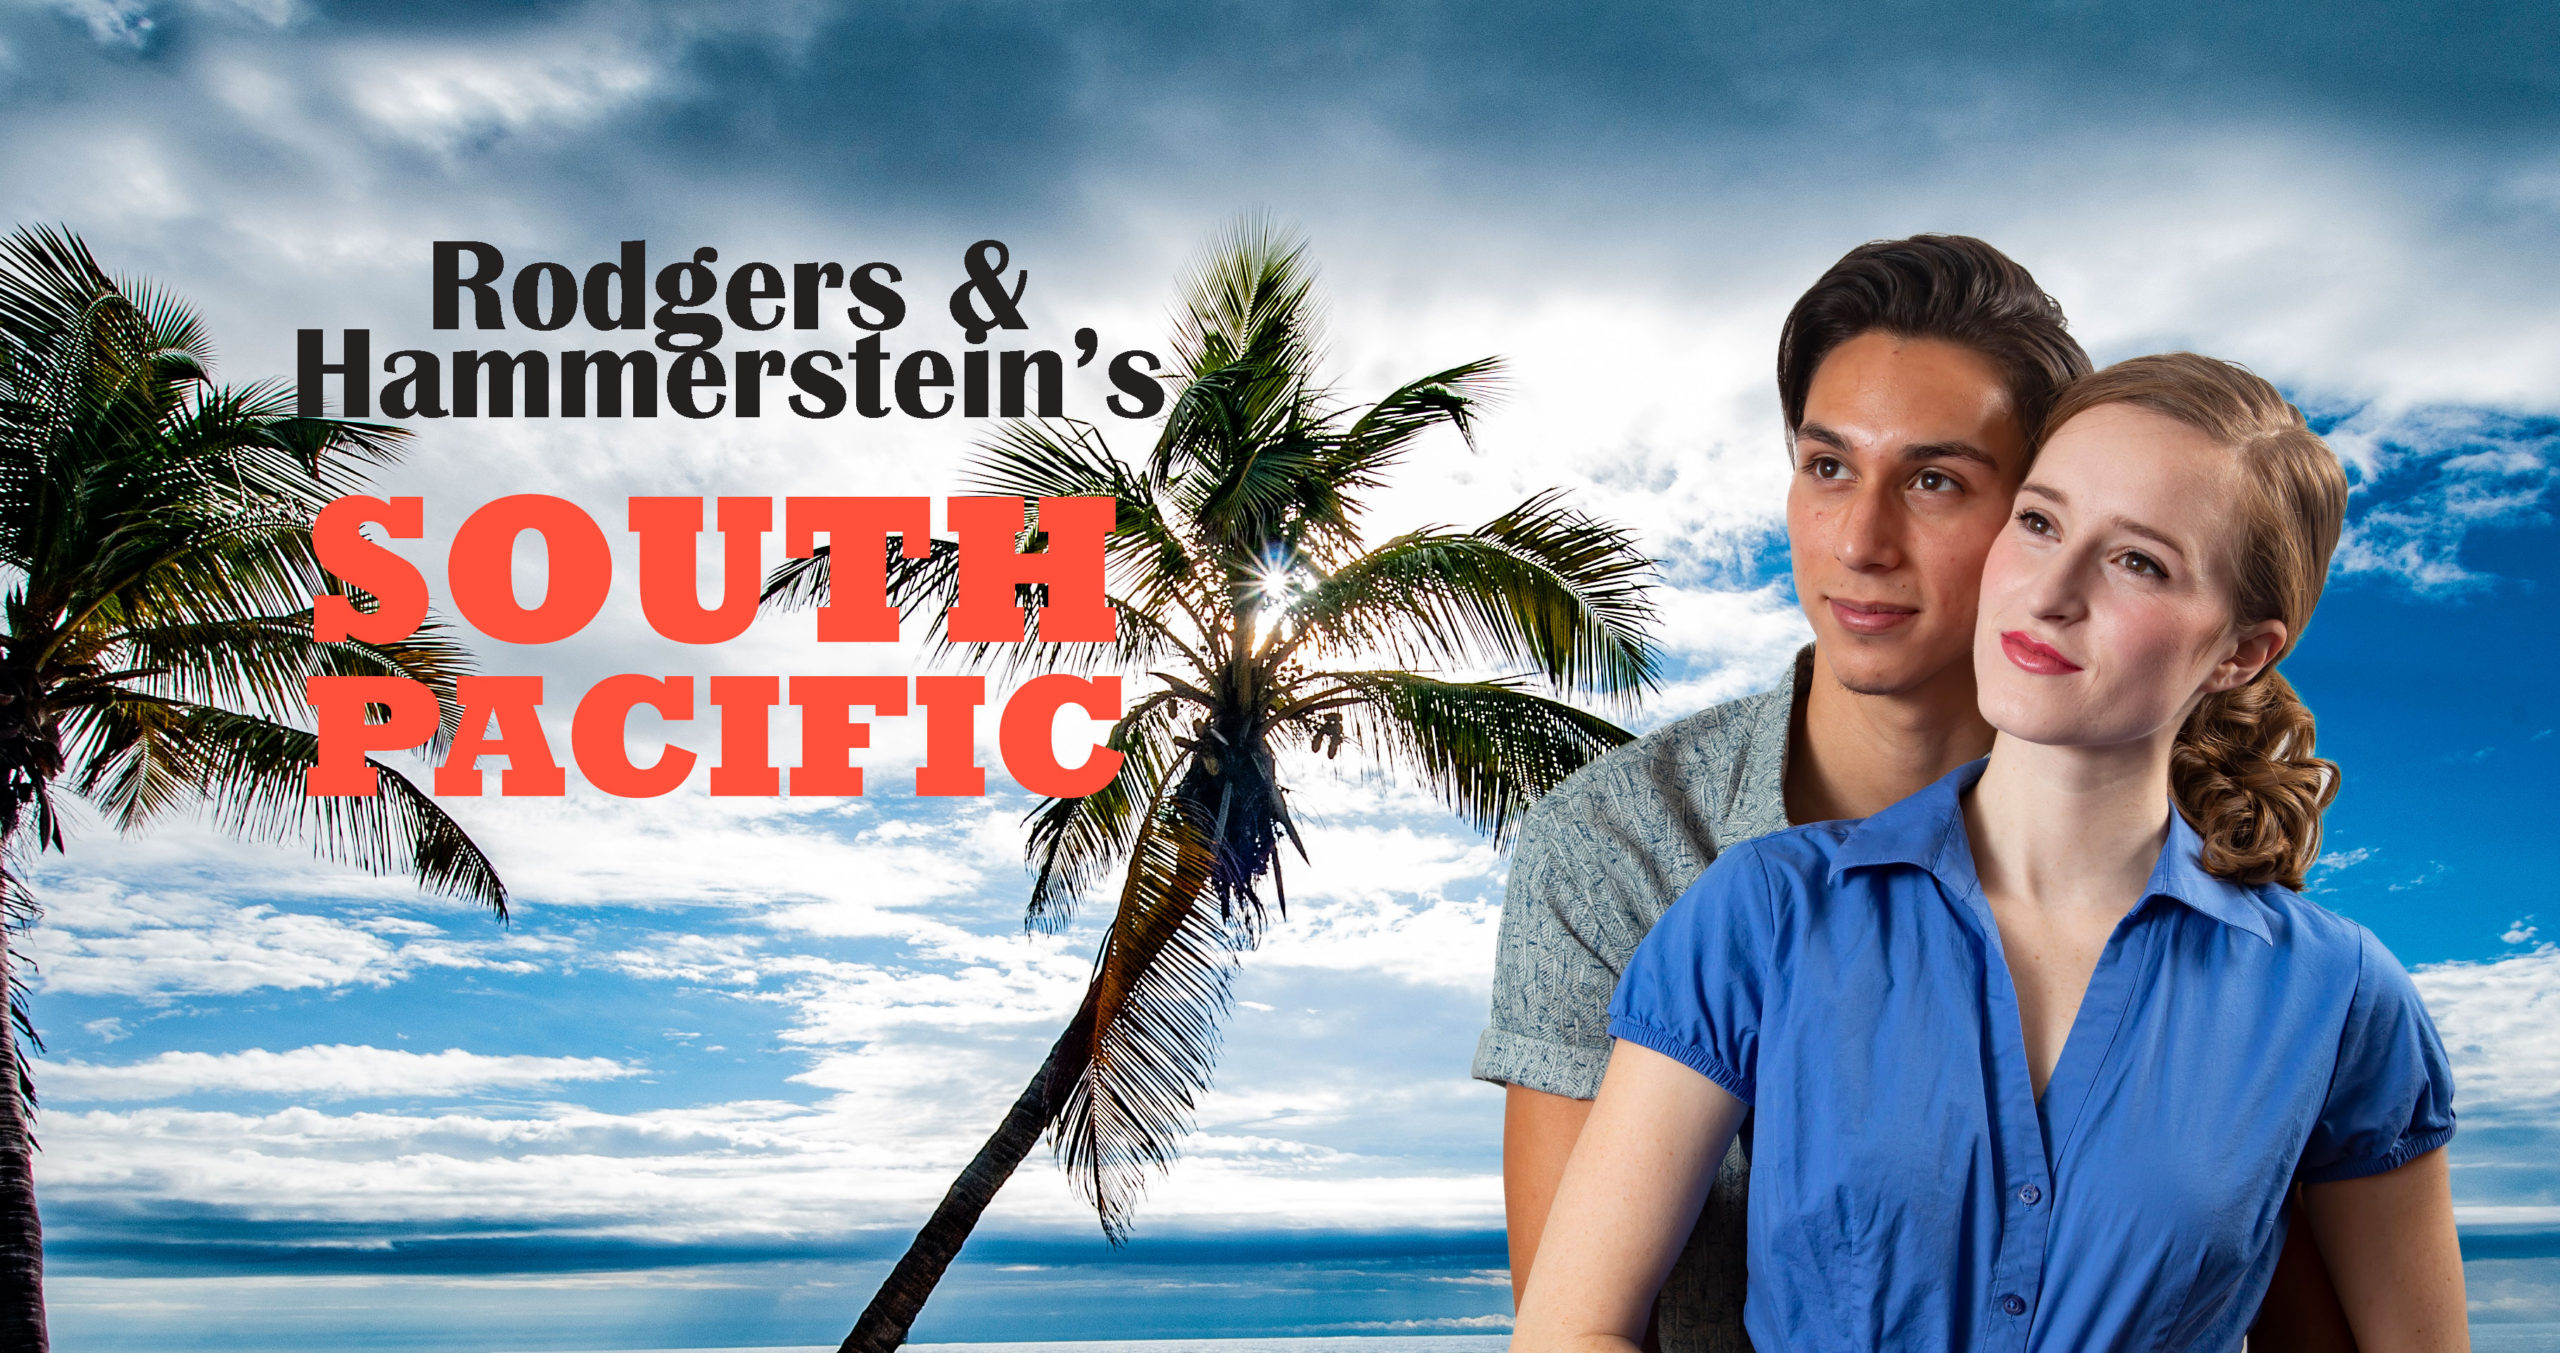 south pacific , anderson symphony, rodgers and hammerstein's, musical